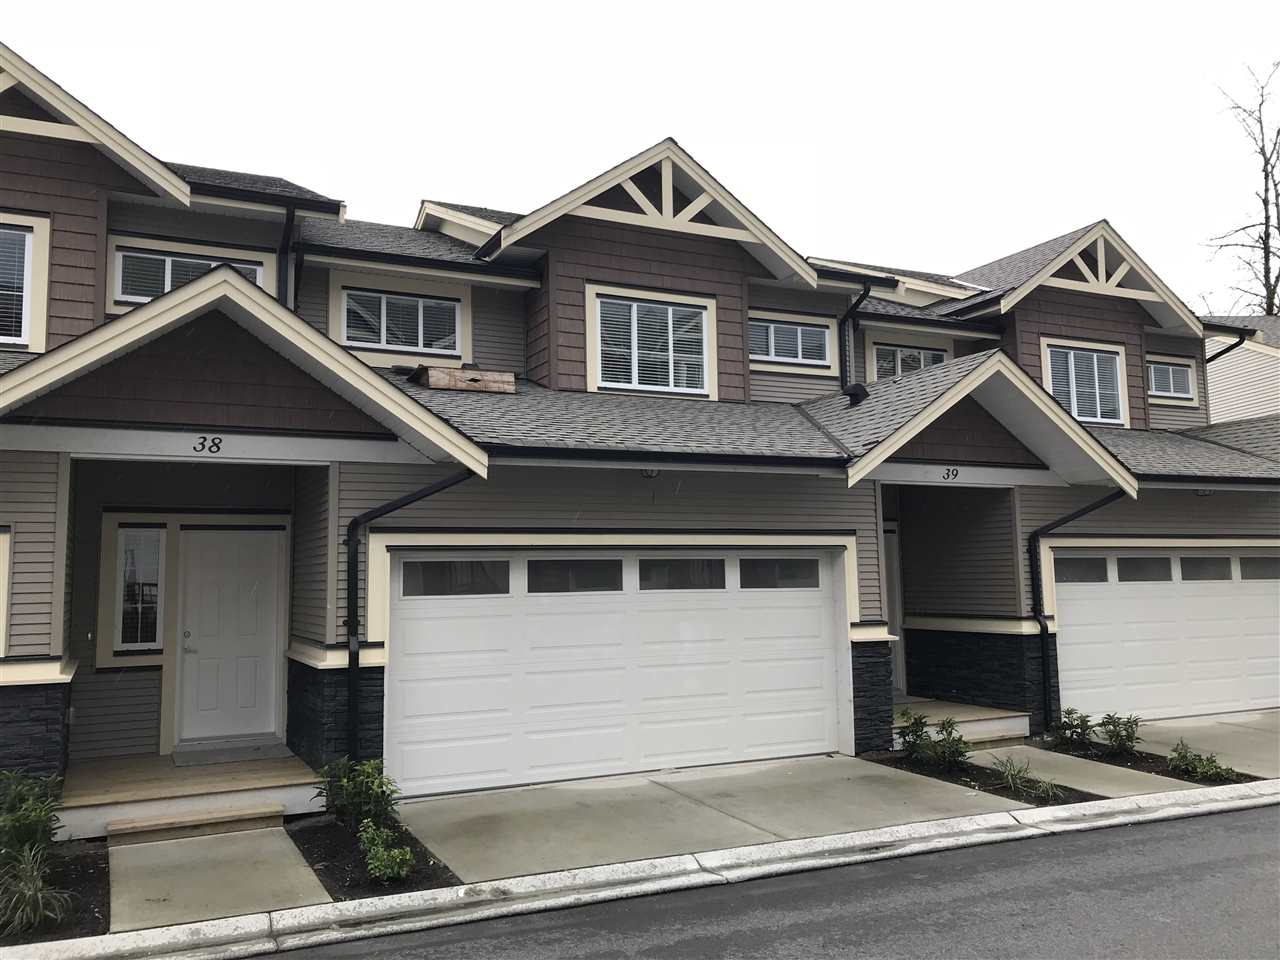 38 11252 COTTONWOOD DRIVE, Maple Ridge